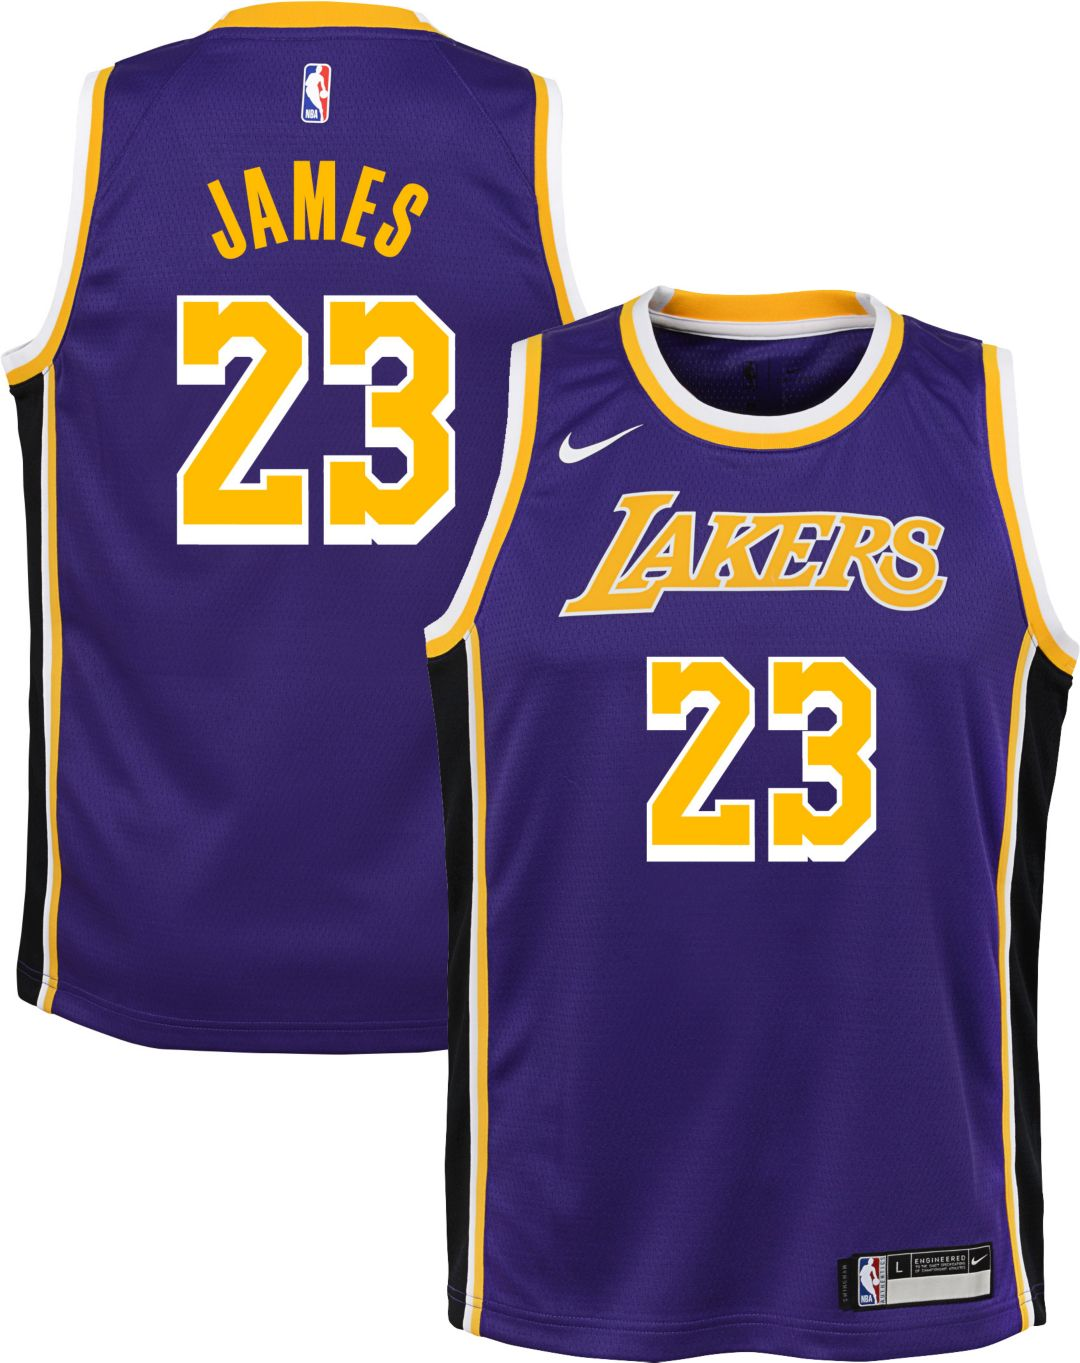 more photos 40d0c 86a06 Nike Youth Los Angeles Lakers LeBron James Dri-FIT Purple Swingman Jersey